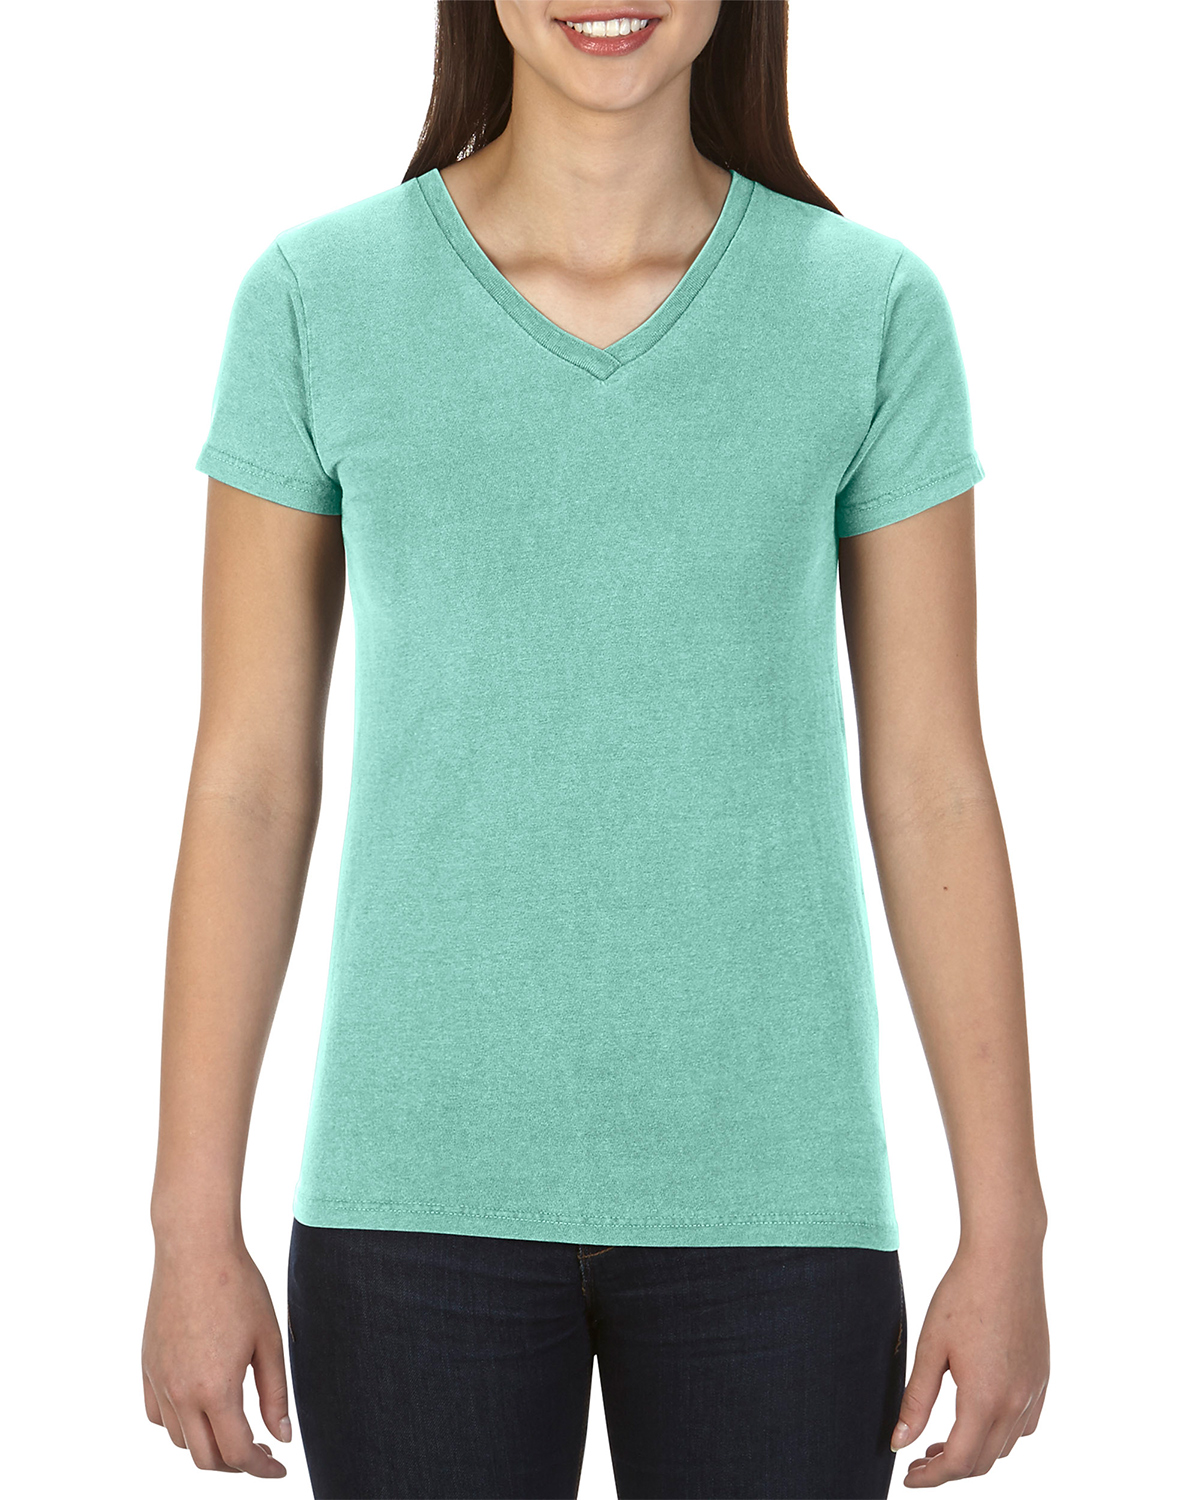 Comfort Colors Drop Ship - C3099 Ladies' 4.8 oz. Garment-Dyed V-Neck T-Shirt